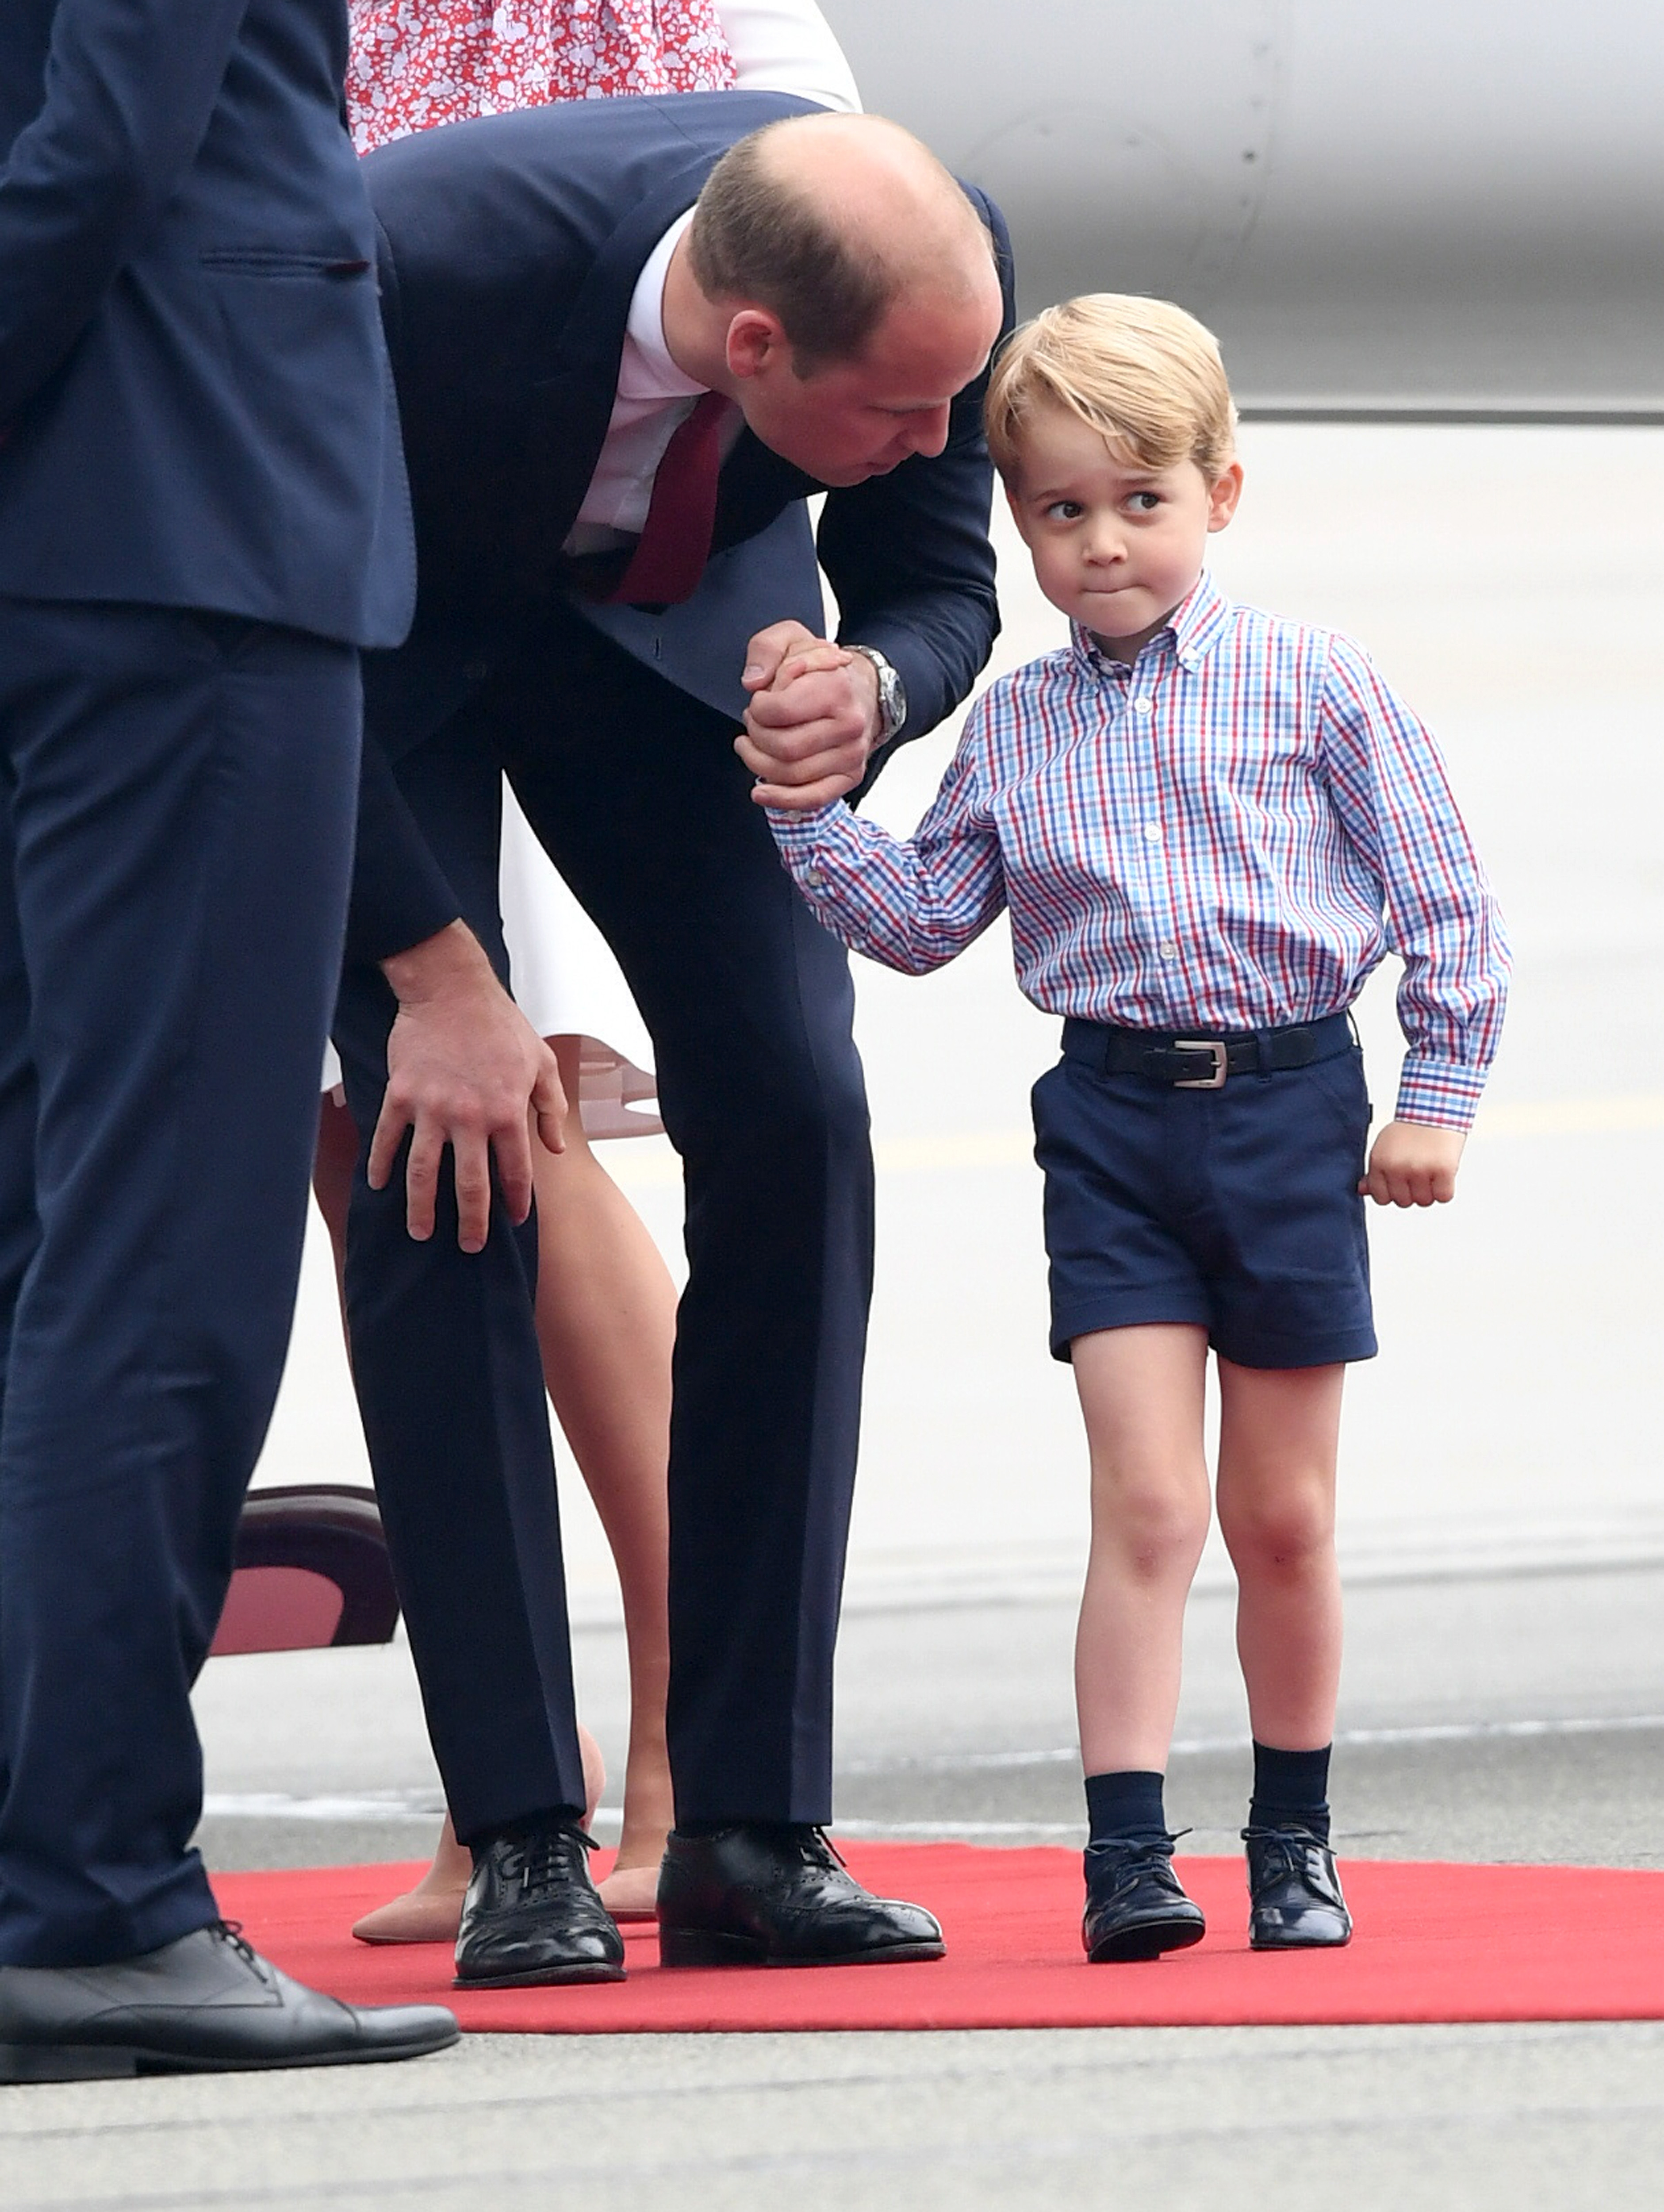 Prince William, Duke of Cambridge and Prince George of Cambridge as they arrive with Catherine, Duchess of Cambridge and Princess Charlotte of Cambridge on day 1 of their official visit to Poland on July 17, 2017 in Warsaw.